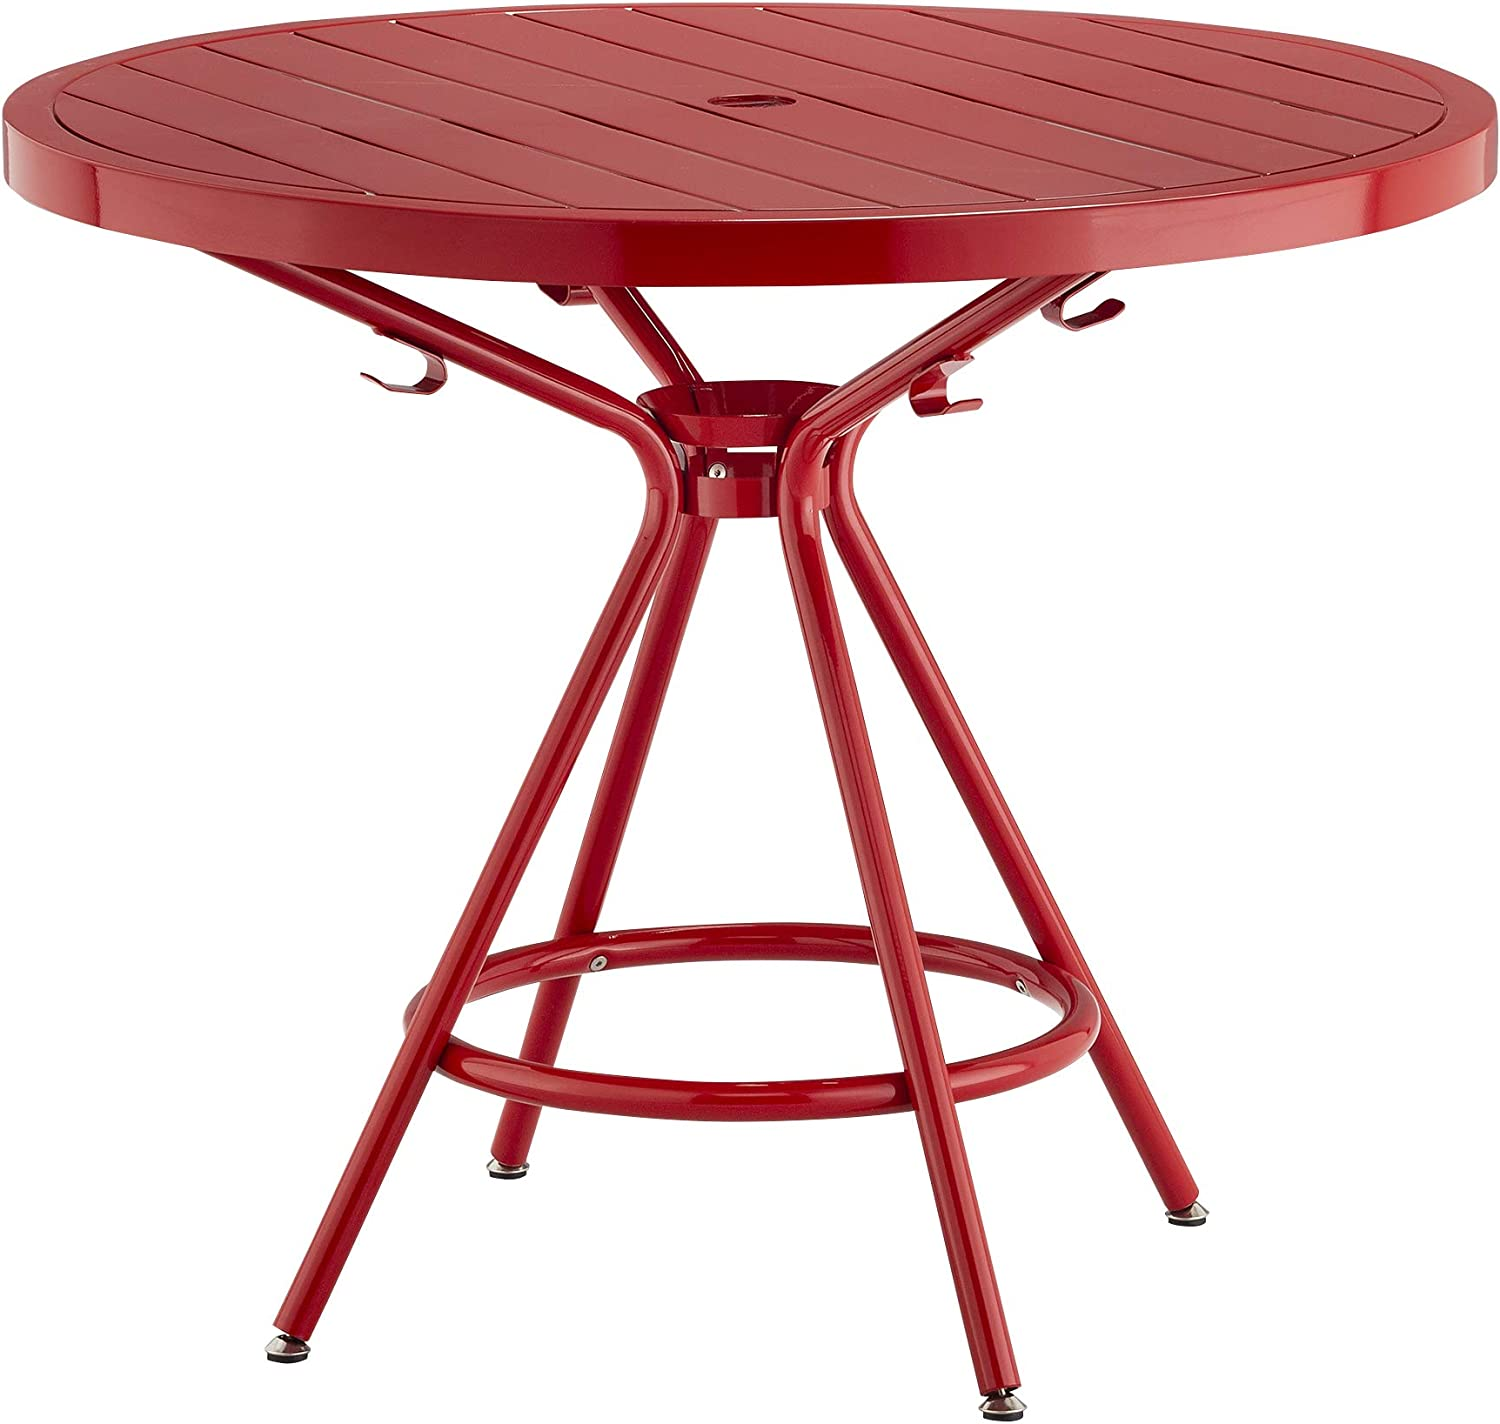 "Safco Products CoGo Steel Indoor/Outdoor Table, 36"" Round, Red"